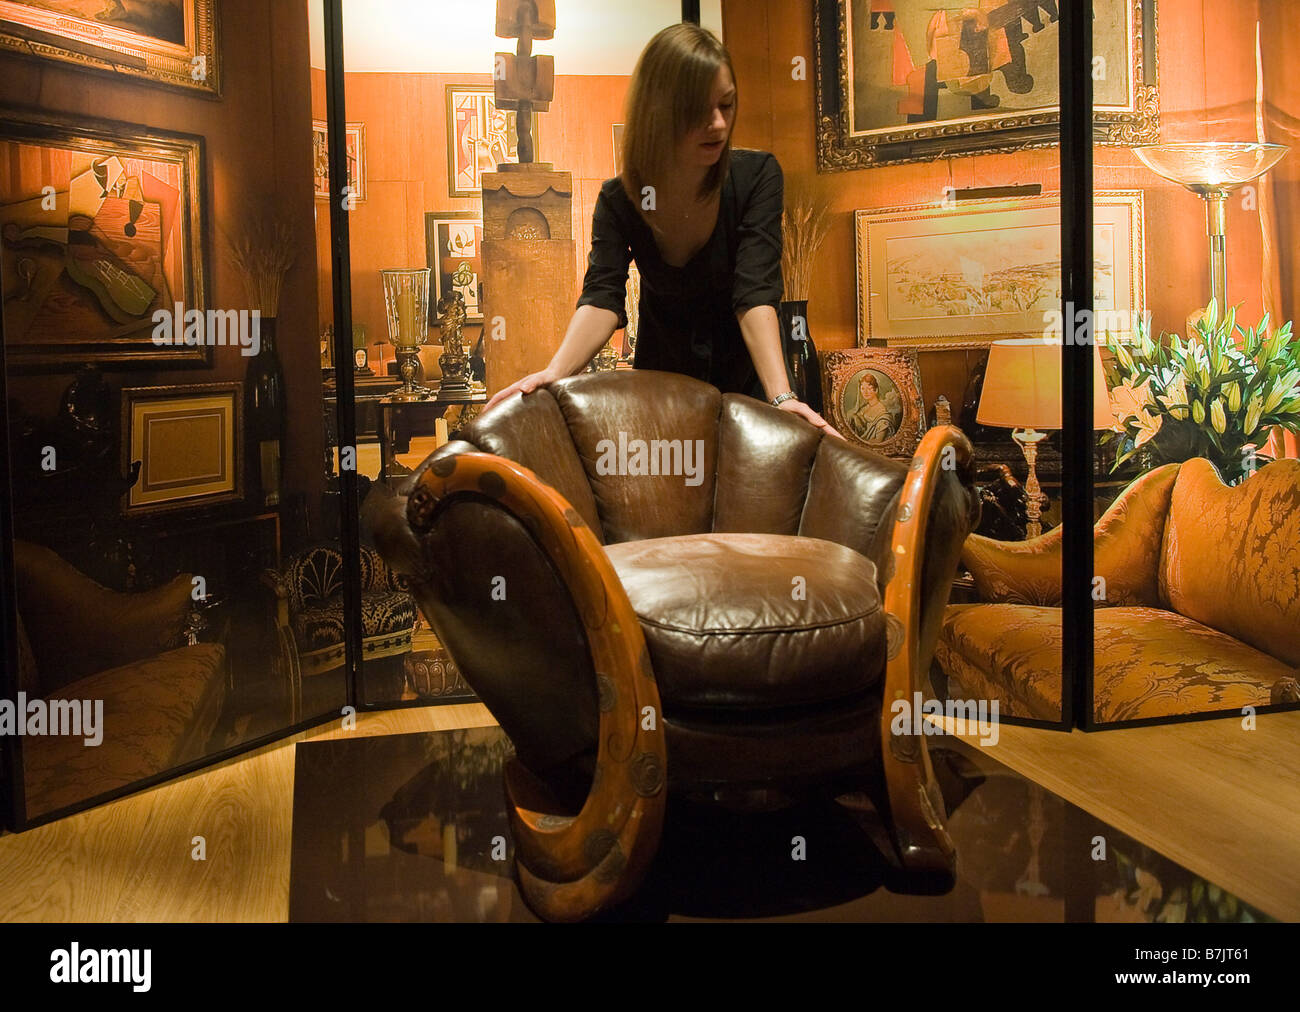 Eileen Gray 'The Dragons' armchair from the  Yves Saint Laurent and Pierre Berge' Collection  at Christie's - Stock Image